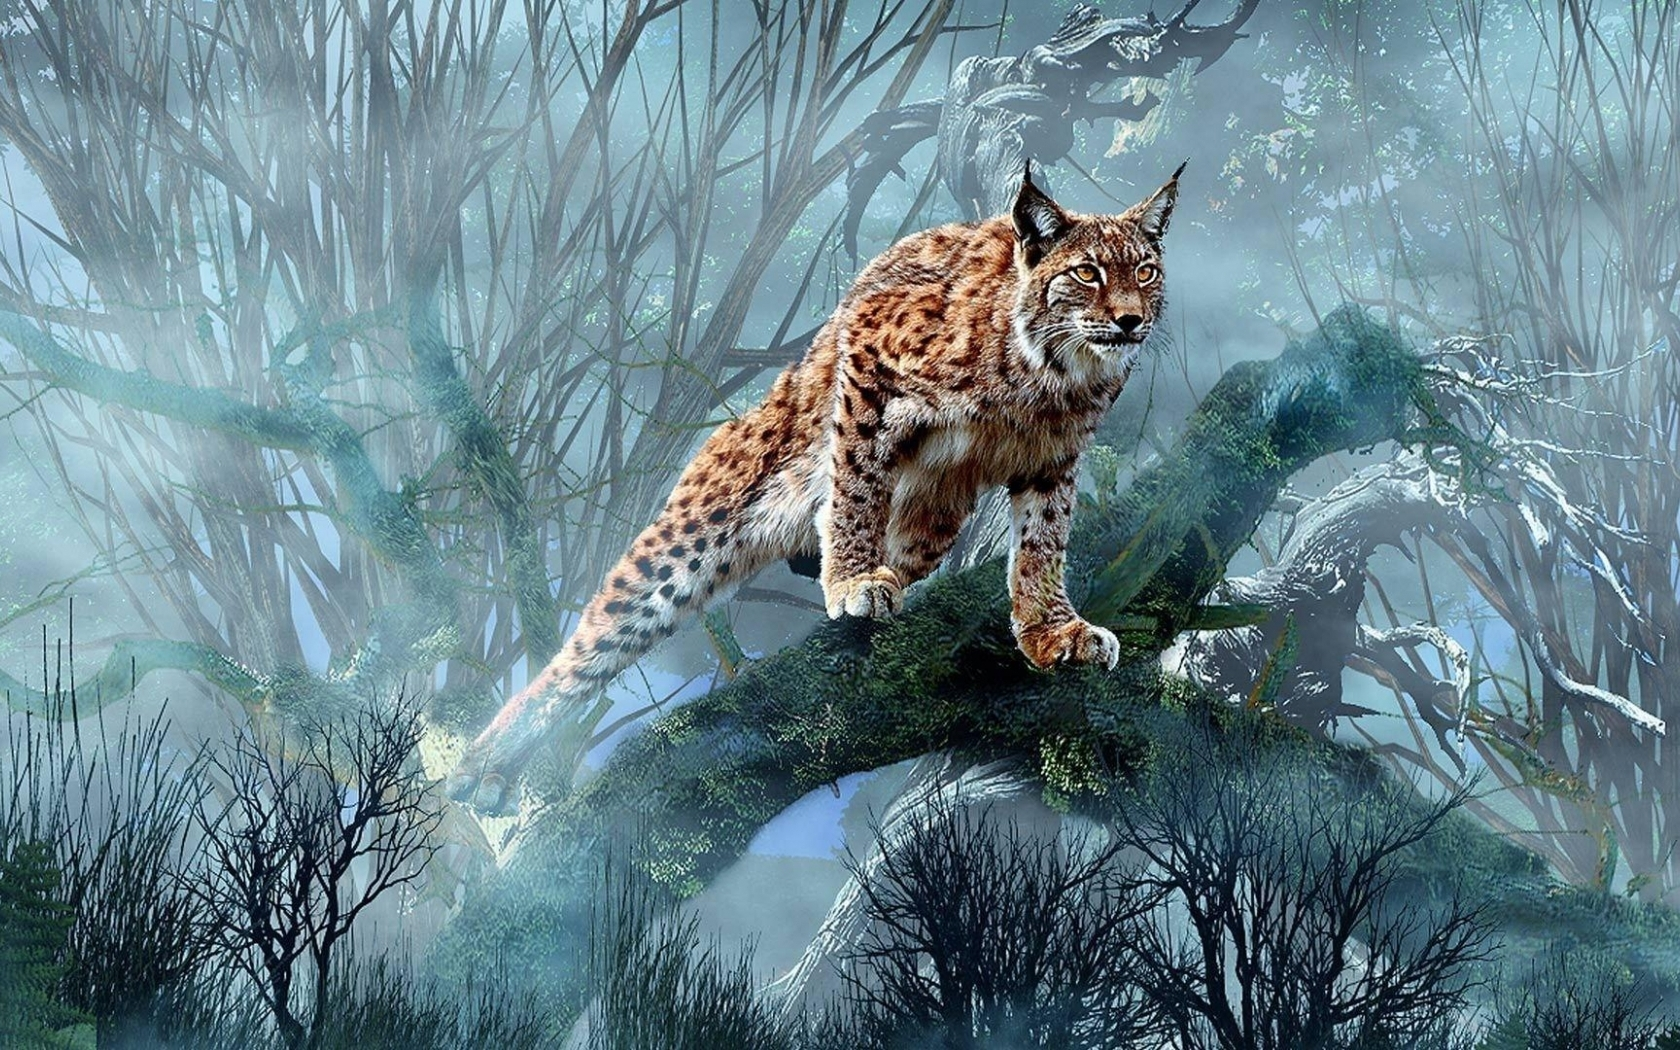 Download Lynx hunting wallpaper in Animals wallpapers with all 1680x1050